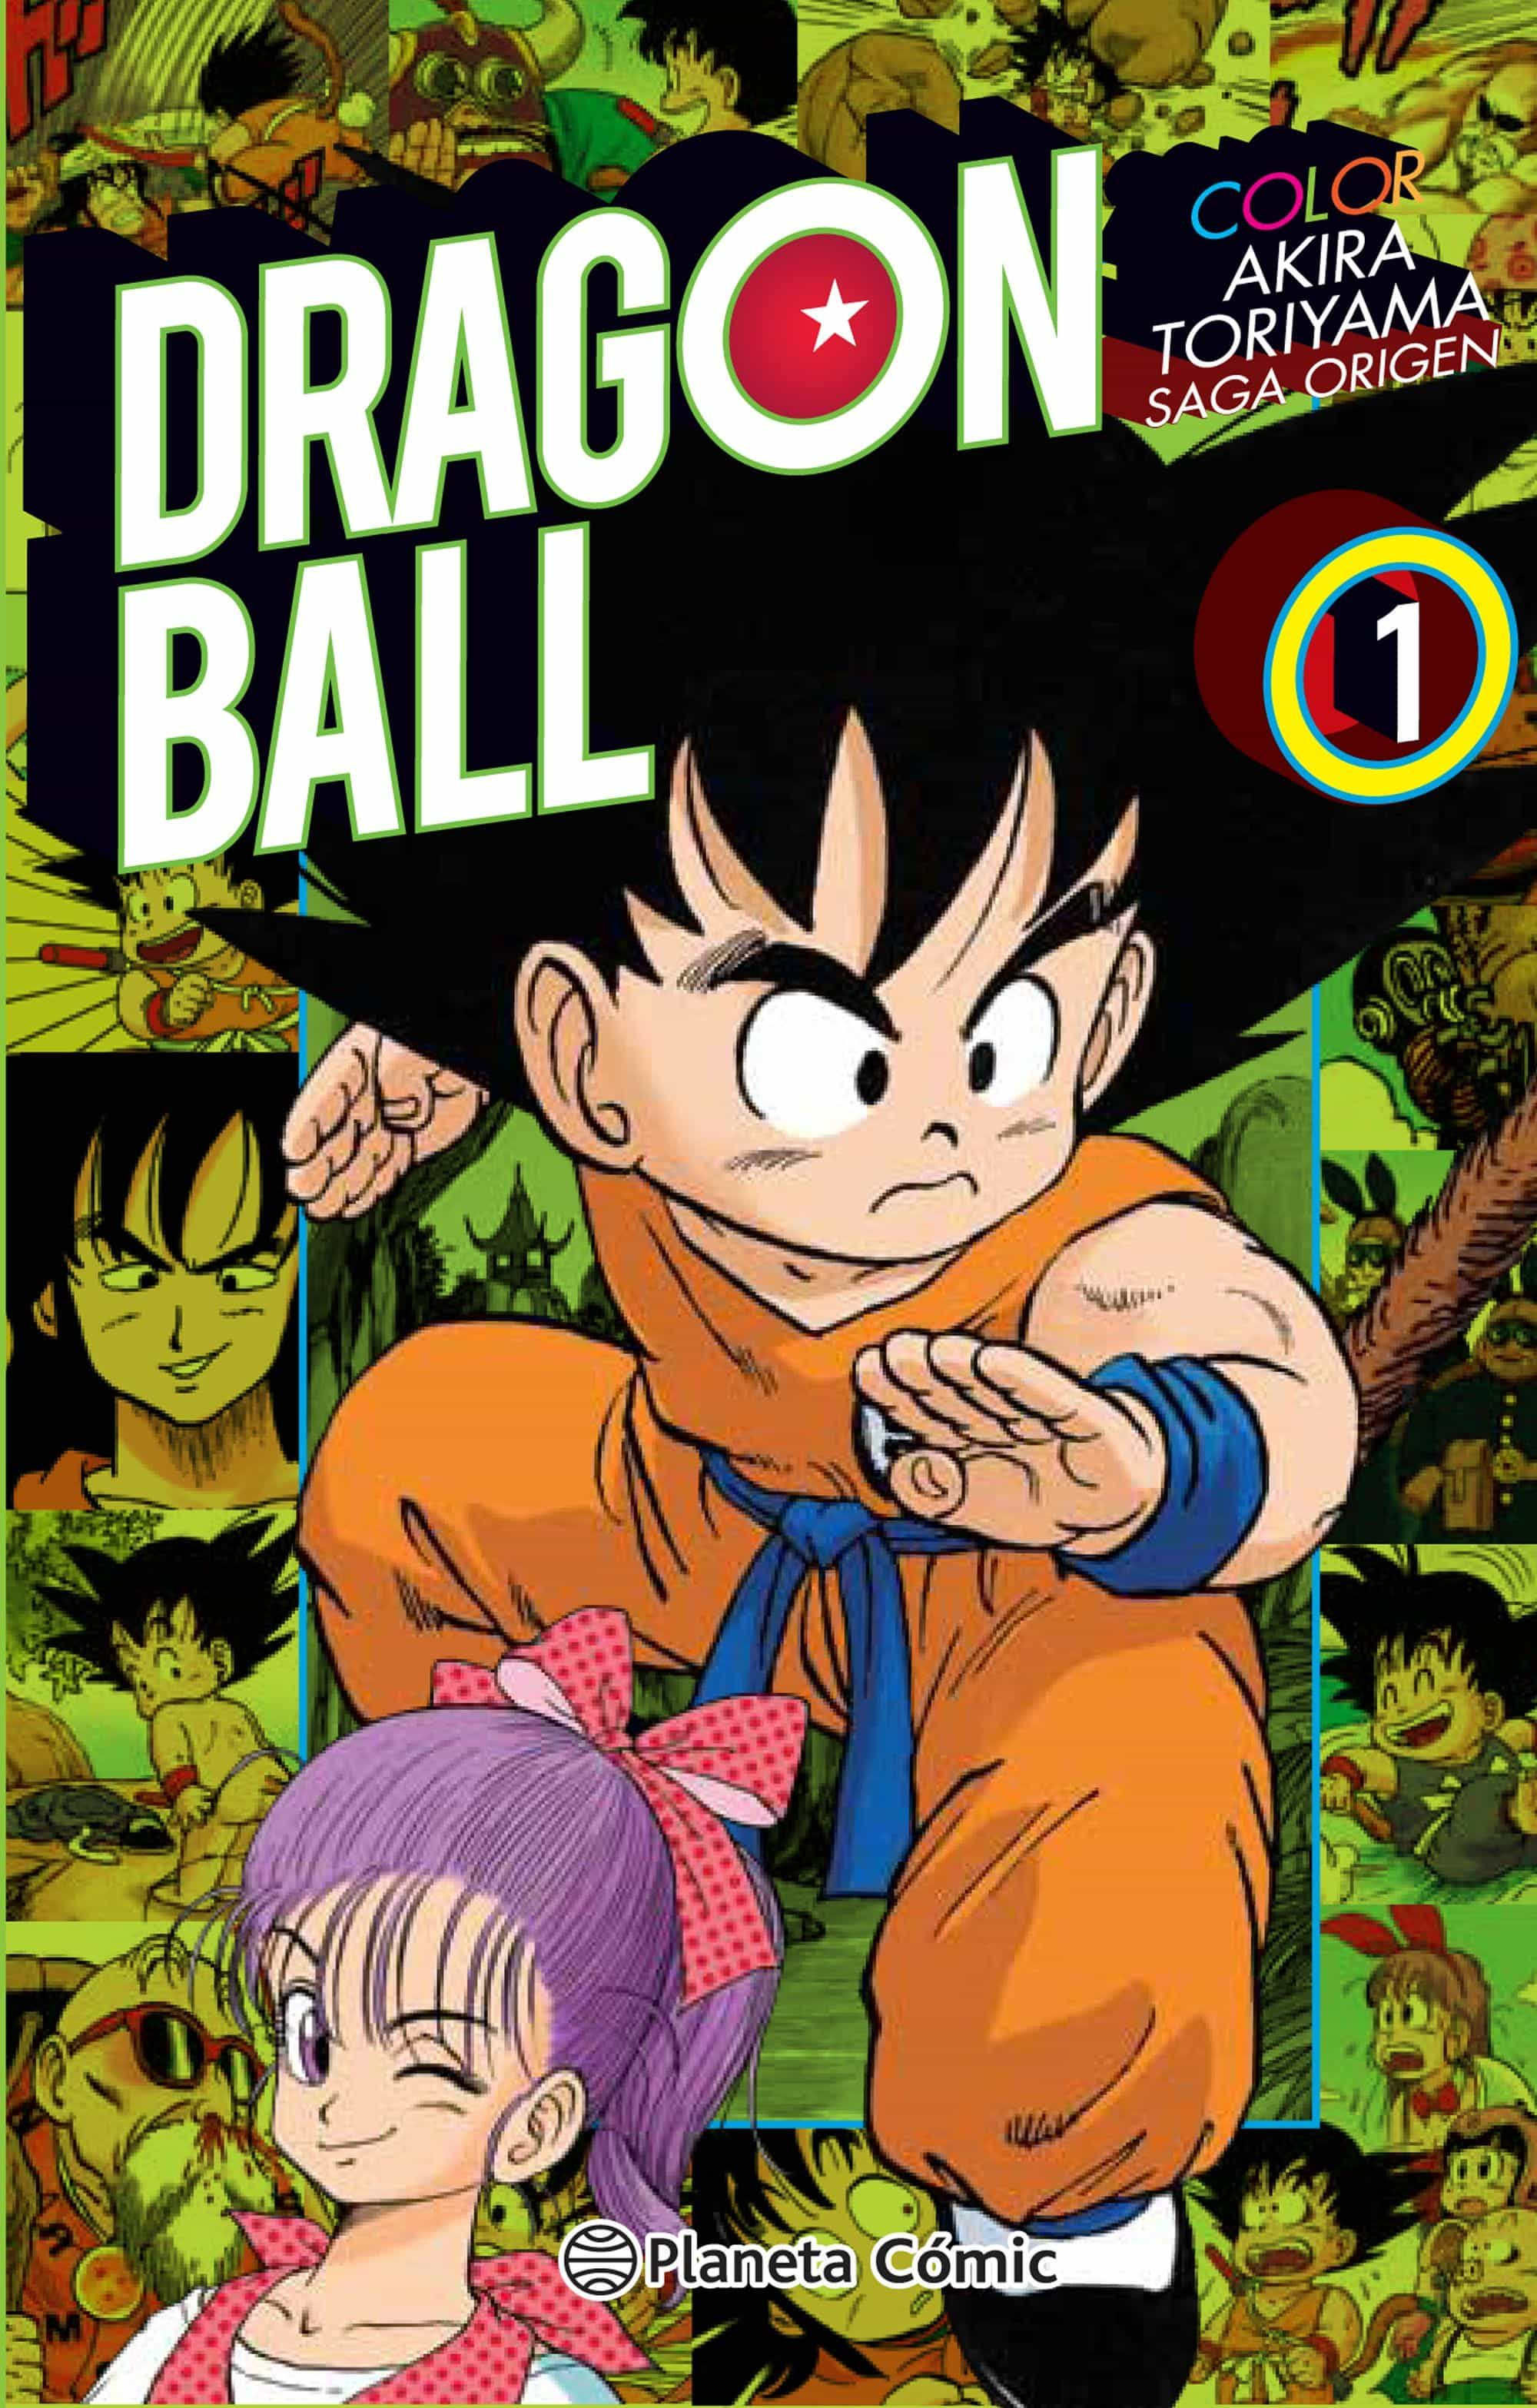 DRAGON BALL COLOR ORIGEN Y RED RIBBON 1